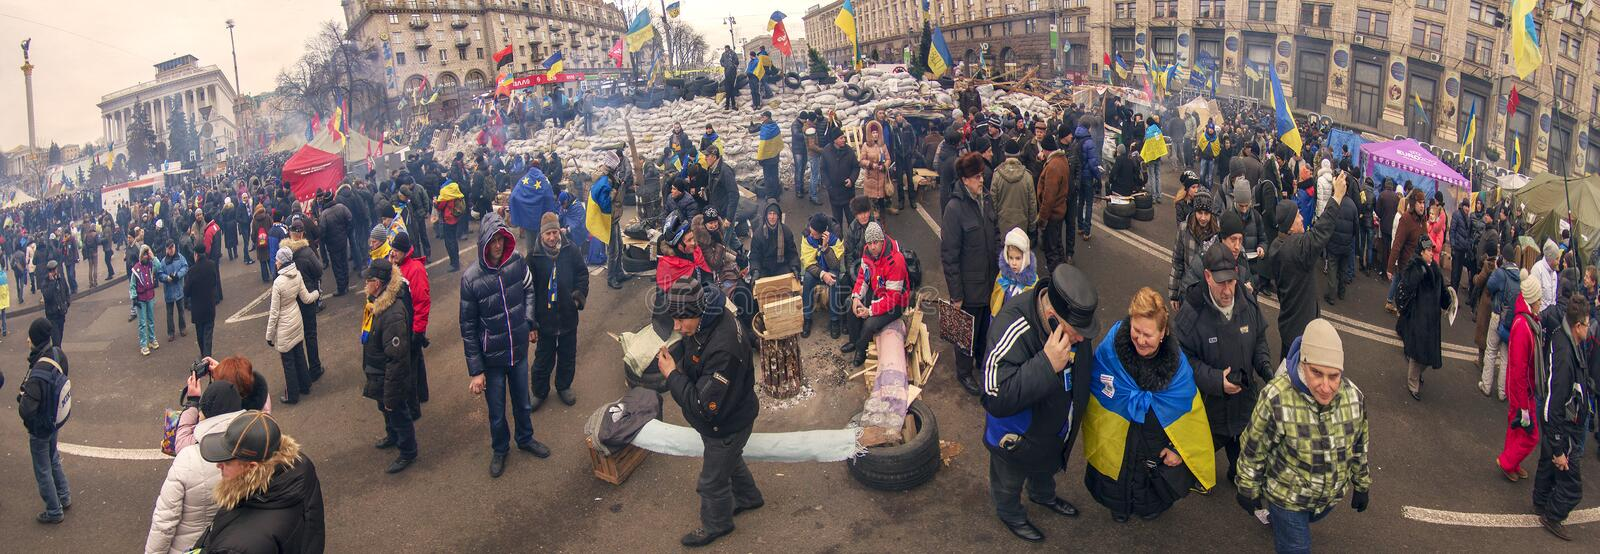 Mass protest against the pro-Russian Ukrainians course Presiden stock photos